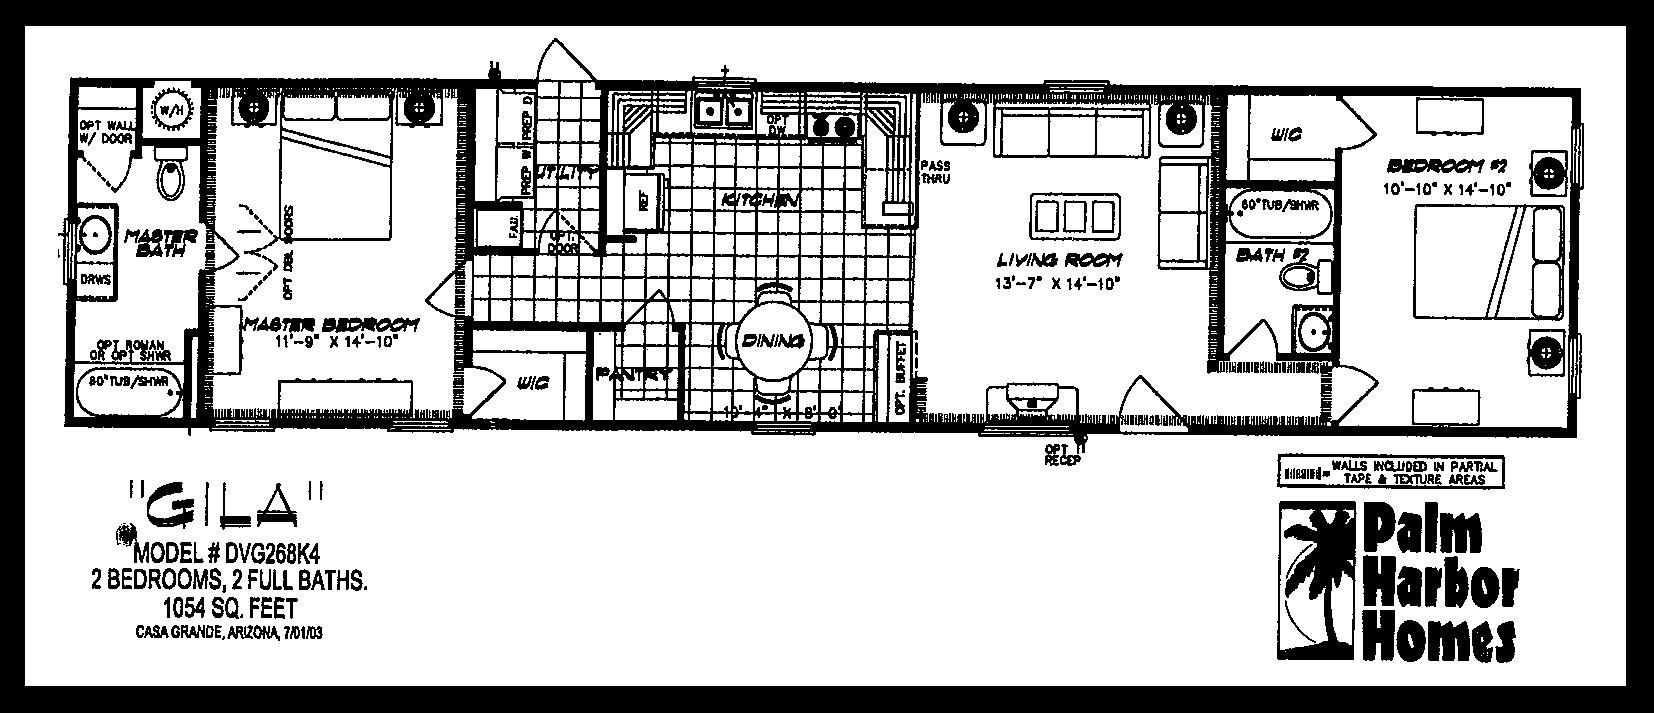 14×70 Mobile Home Floor Plan awesome 2 bedroom mobile homes photos - room design ideas